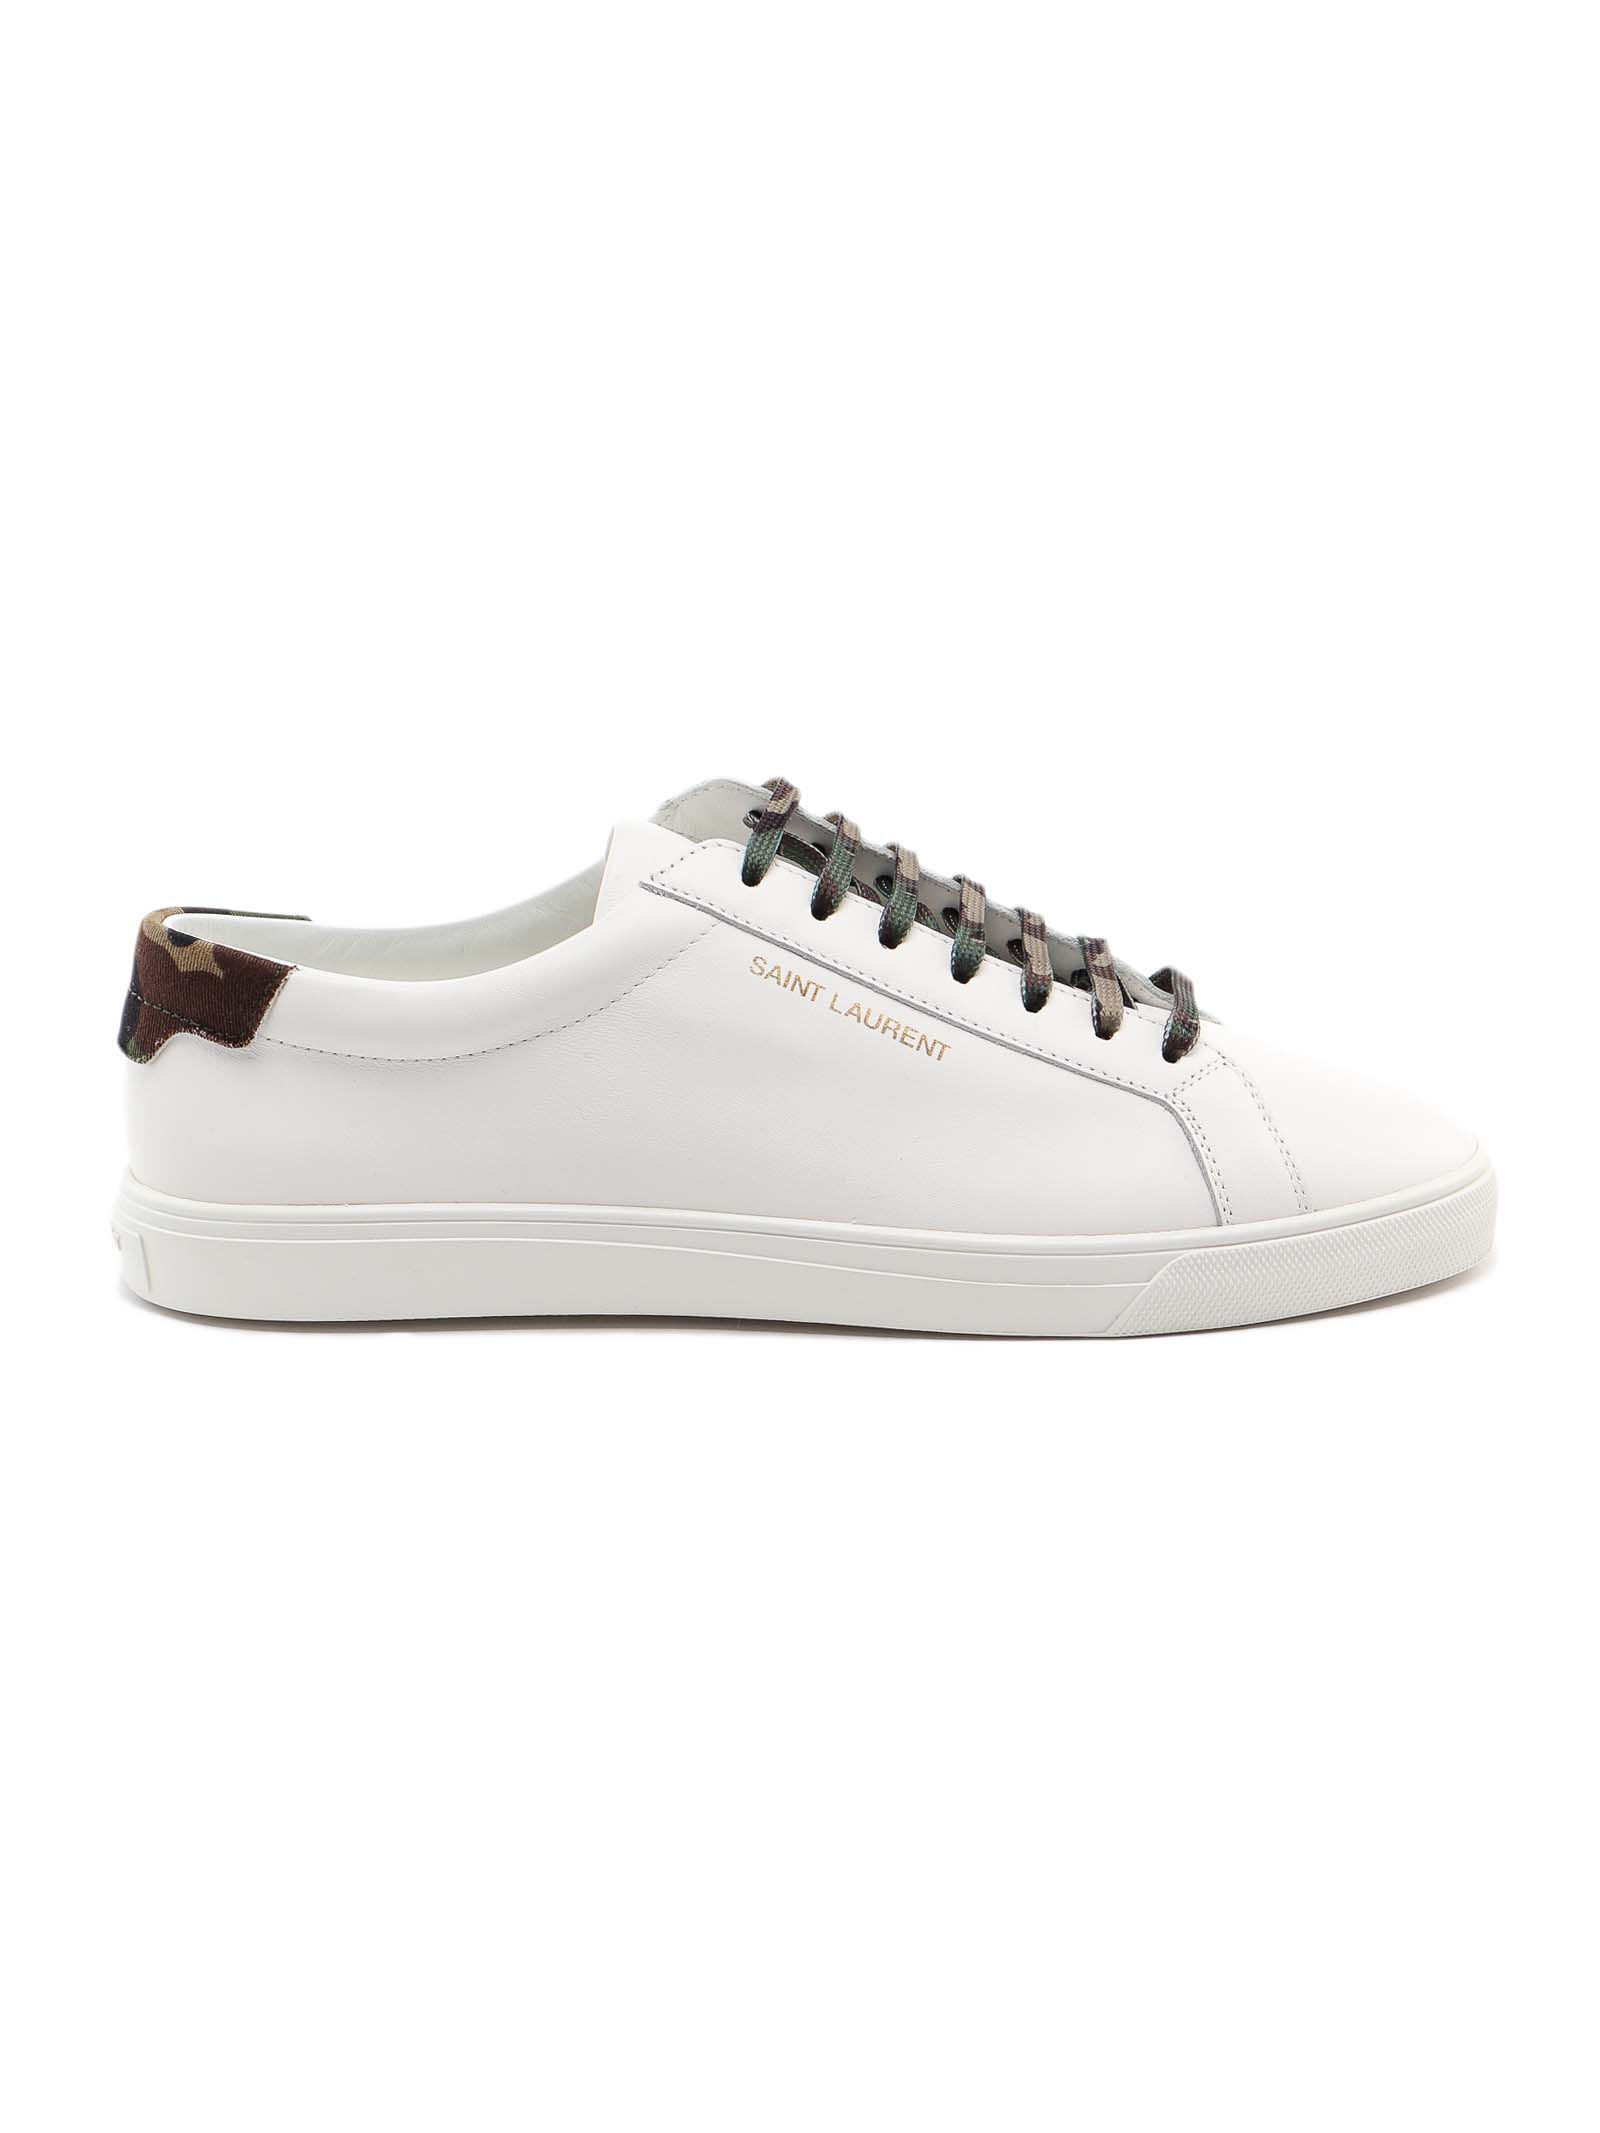 Top Low Laurent Saint Andy Sneaker CxBosdtrhQ